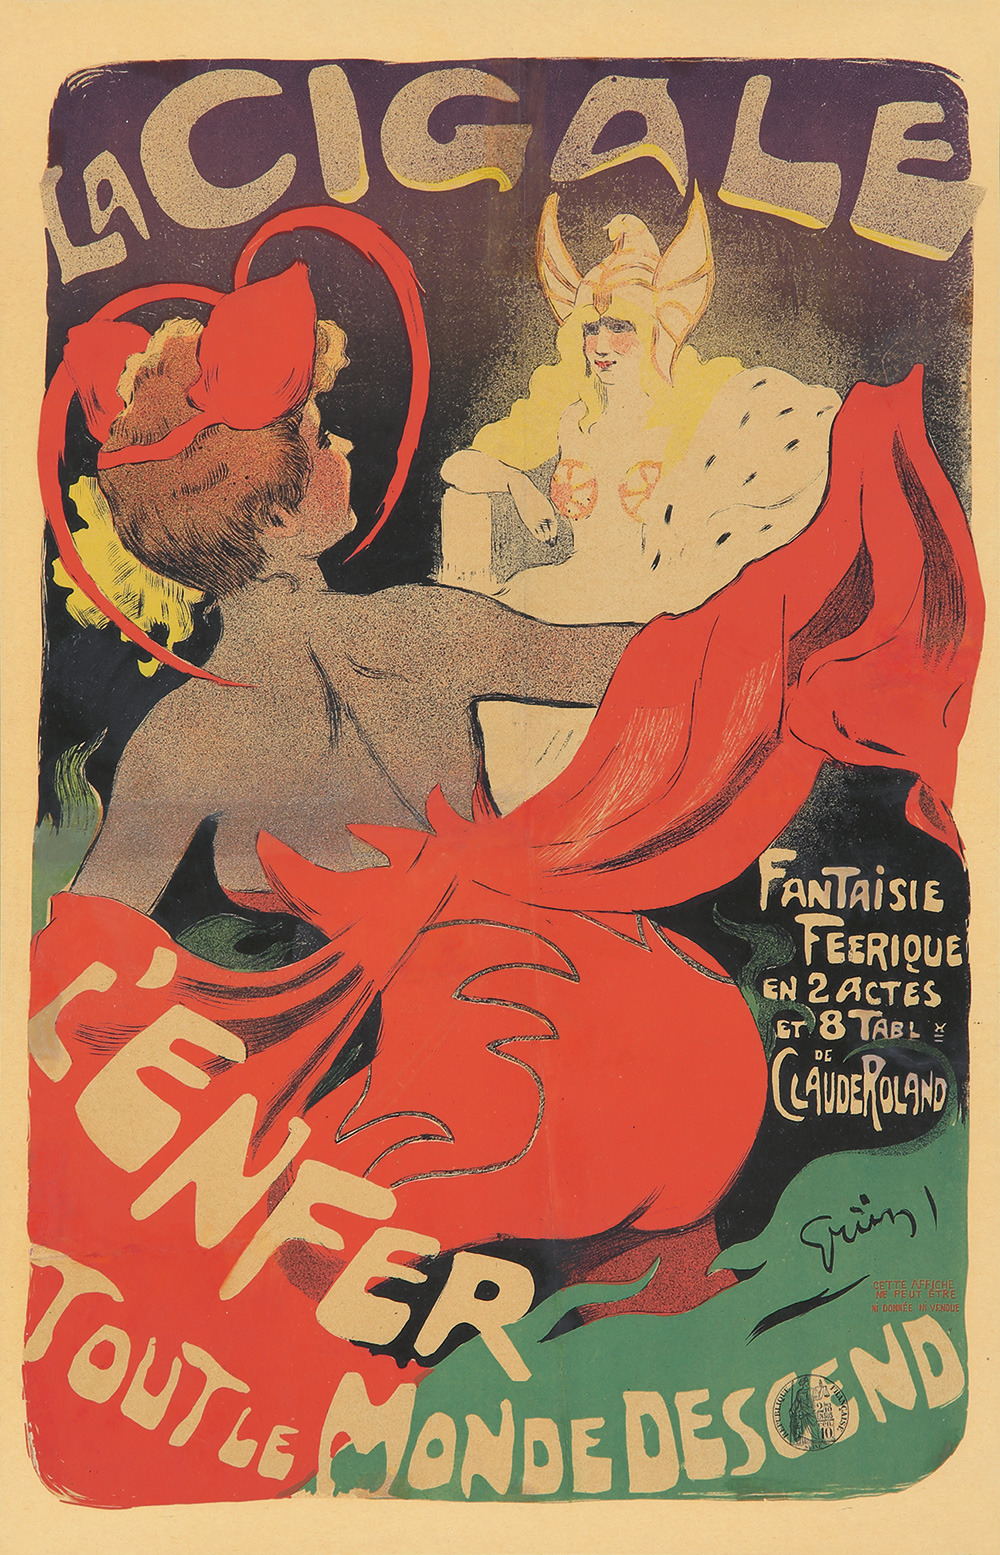 336. La Cigale/L'Enfer. 1902.